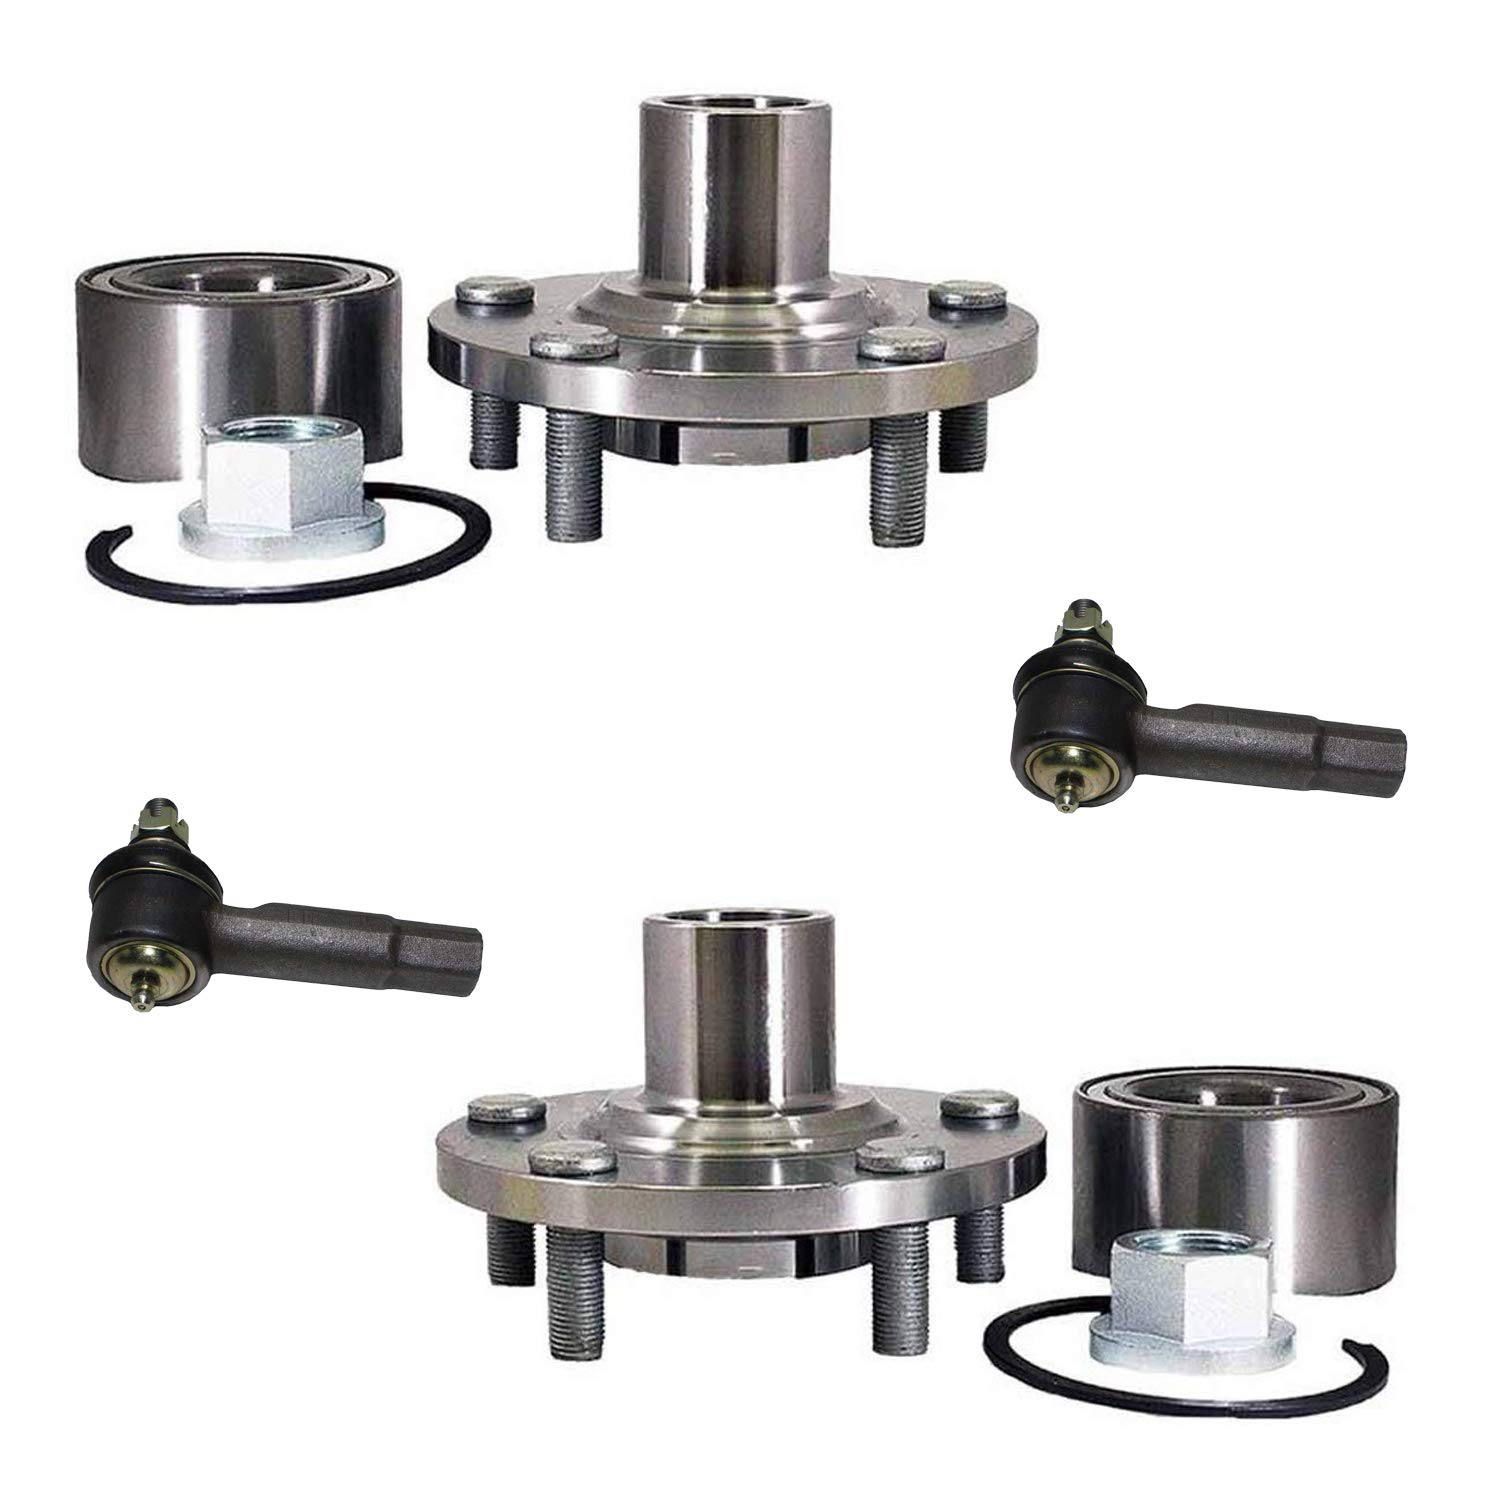 Detroit Axle - Front Wheel Sales of Challenge the lowest price of Japan SALE items from new works Hub Tie for Bearing Outer Infinit Rod